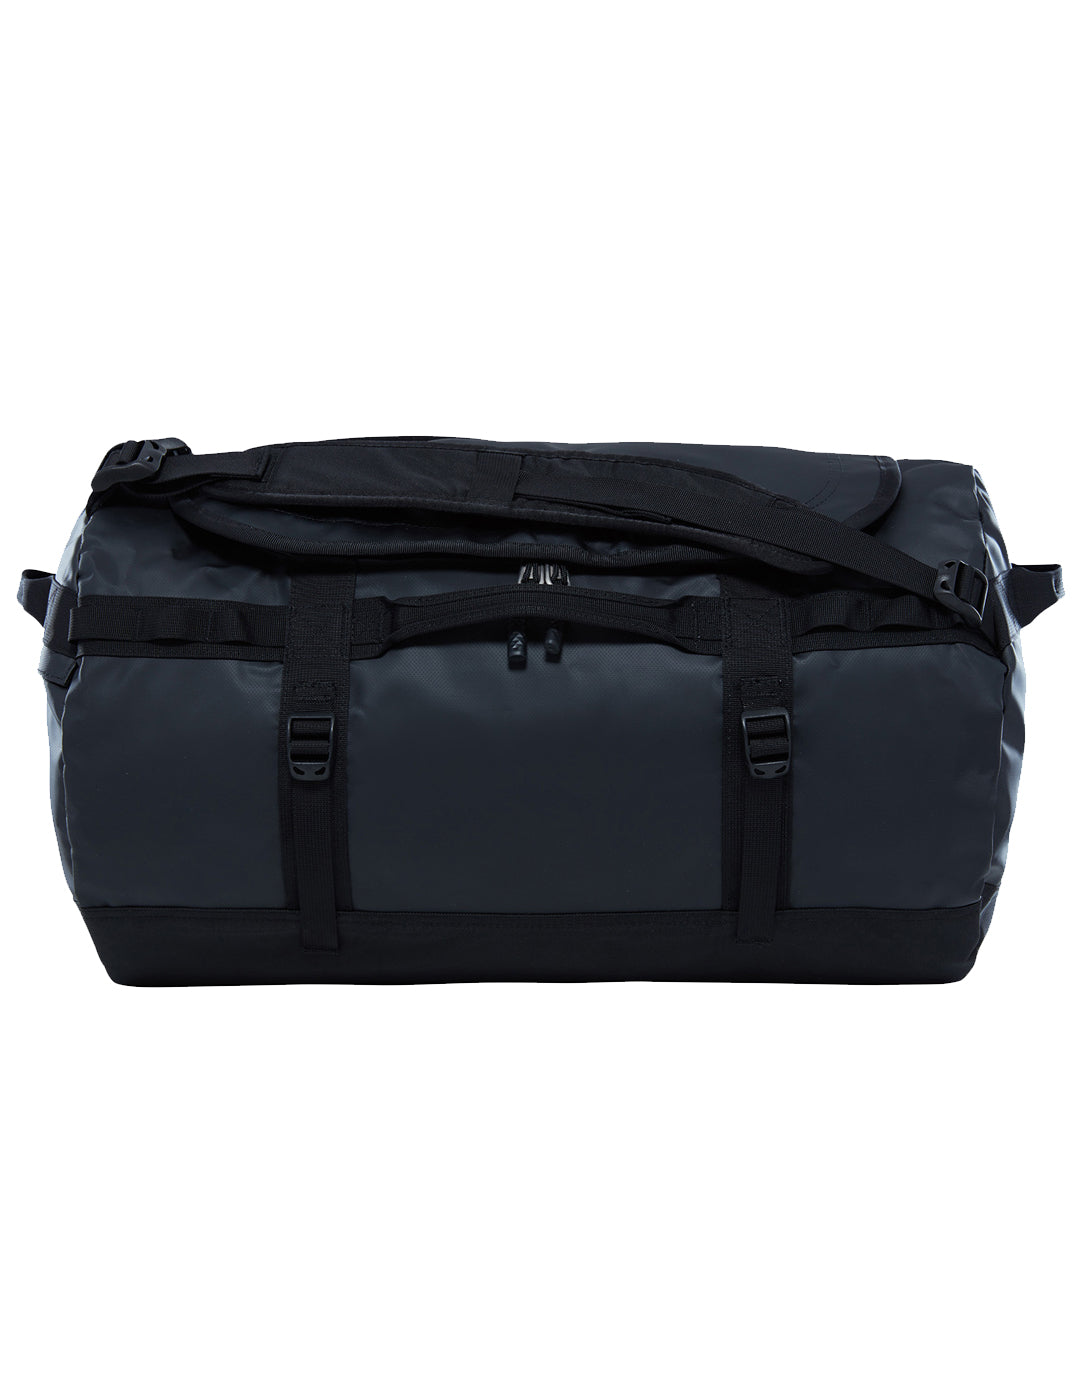 5c0f2477d43 The North Face Base Camp Duffel - Small | Simply Hike UK